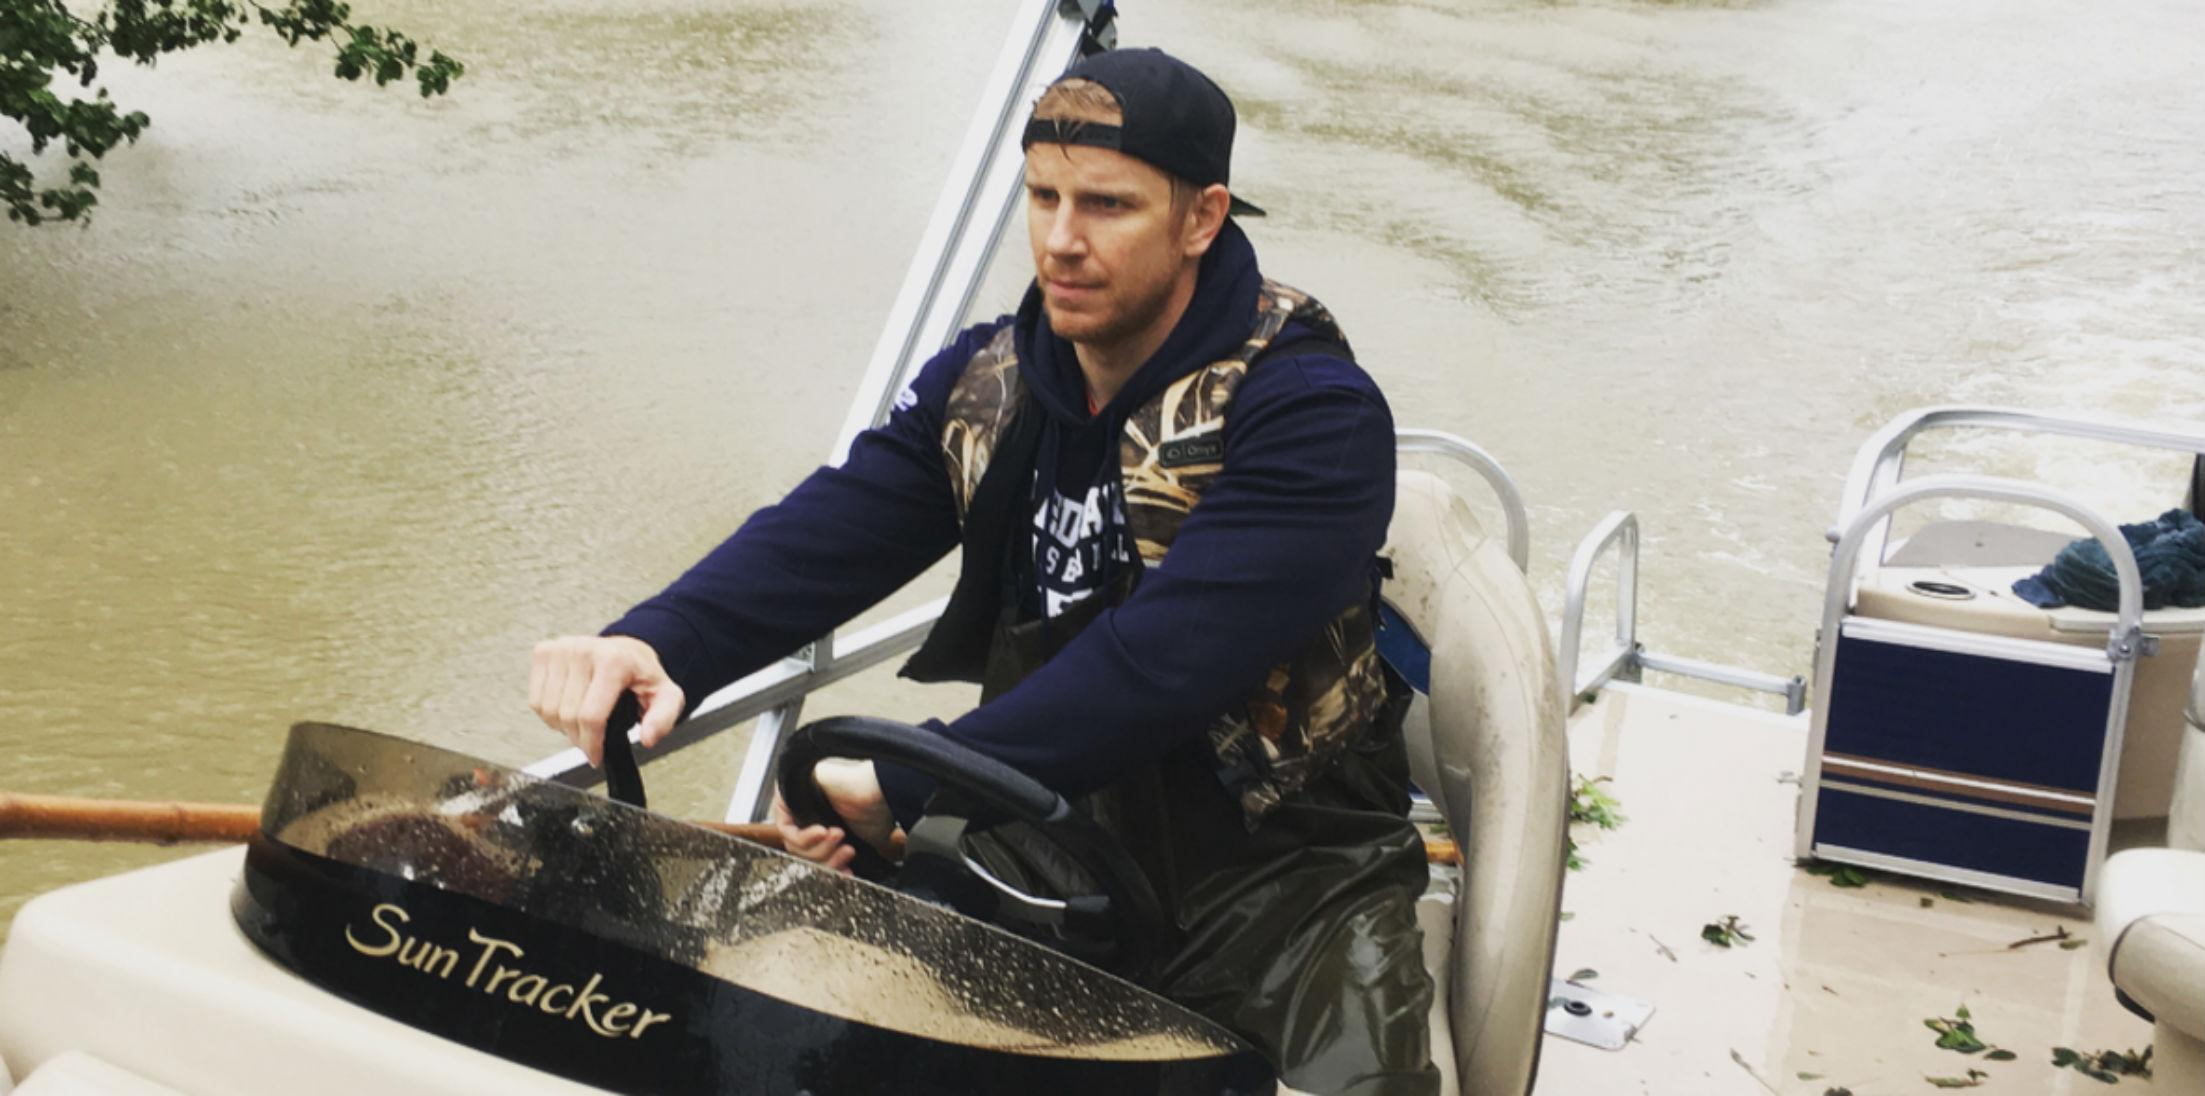 Bachelor Alum Sean Lowe Drives Boat Through Houston To Save Harvey Victims hero